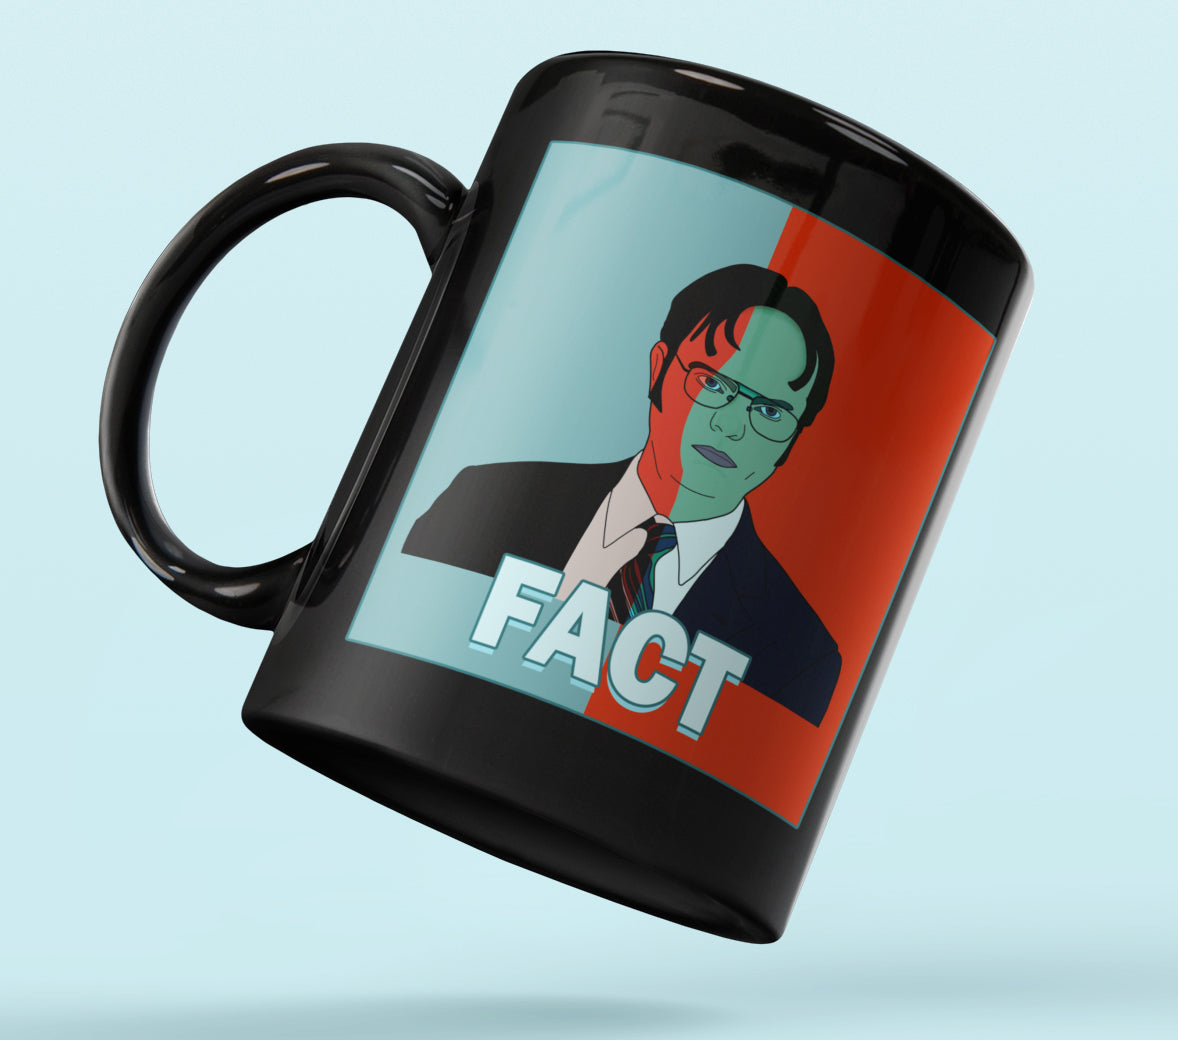 Black mug with red and blue dwight schrute 2020 - HighCiti